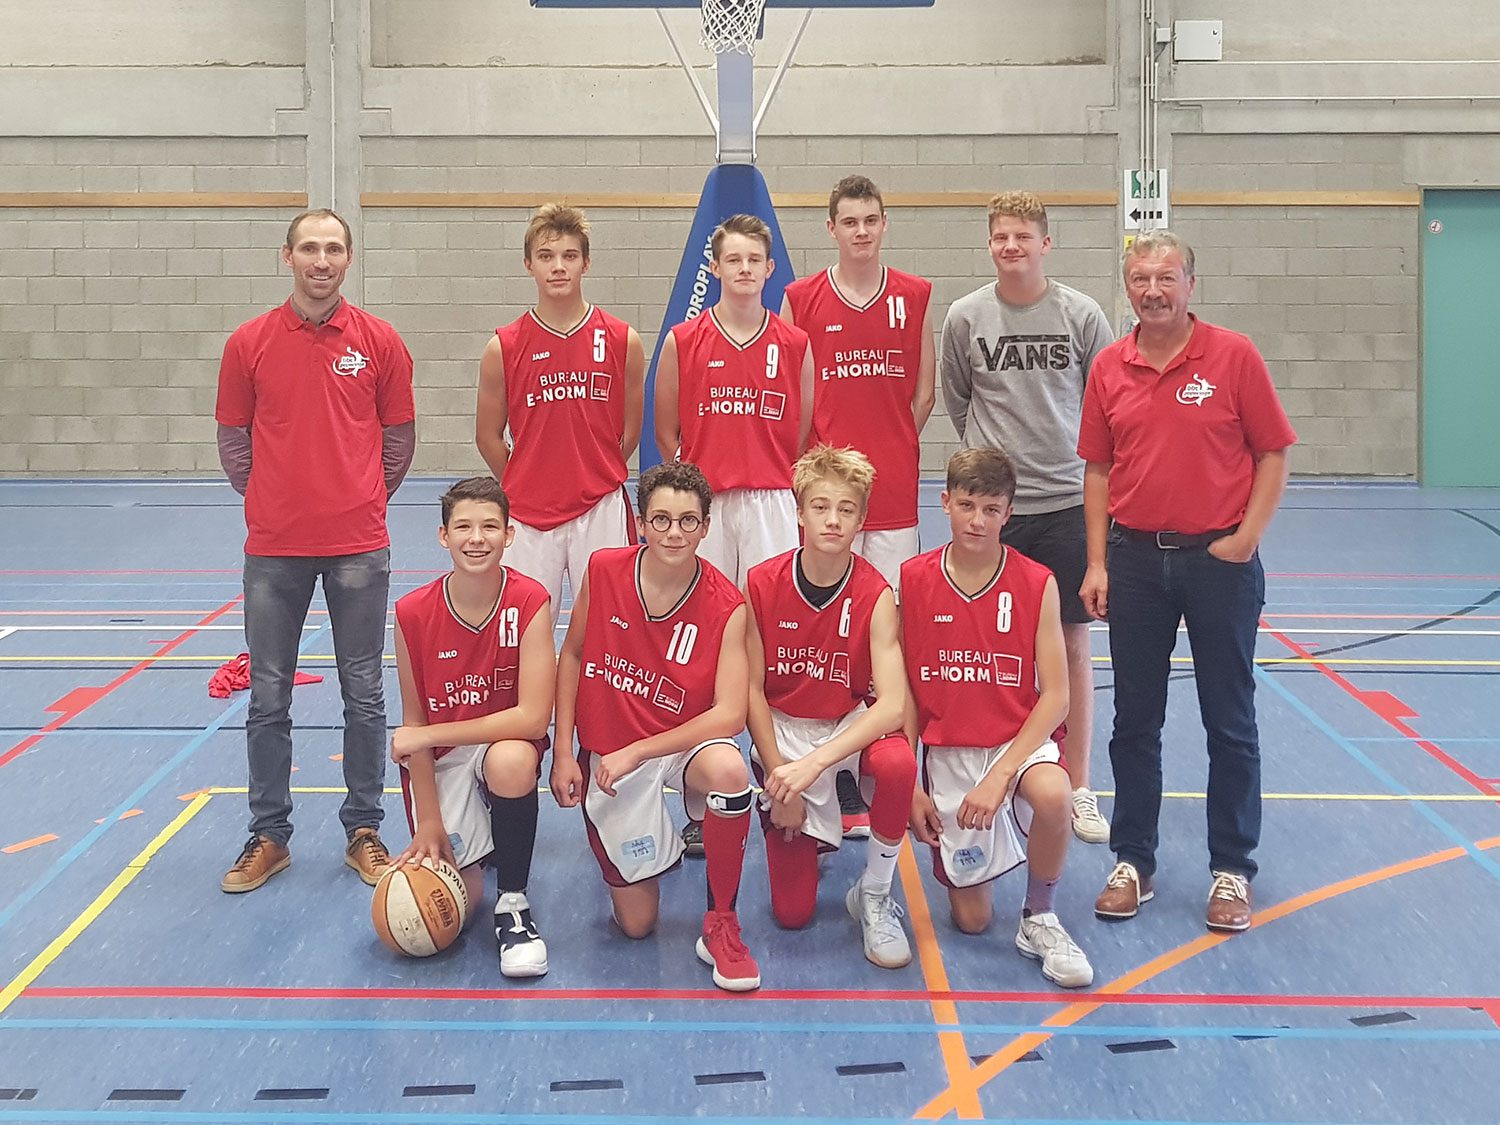 Antwerp Giants J16 A vs BBC Poperinge J16 A: 114-54